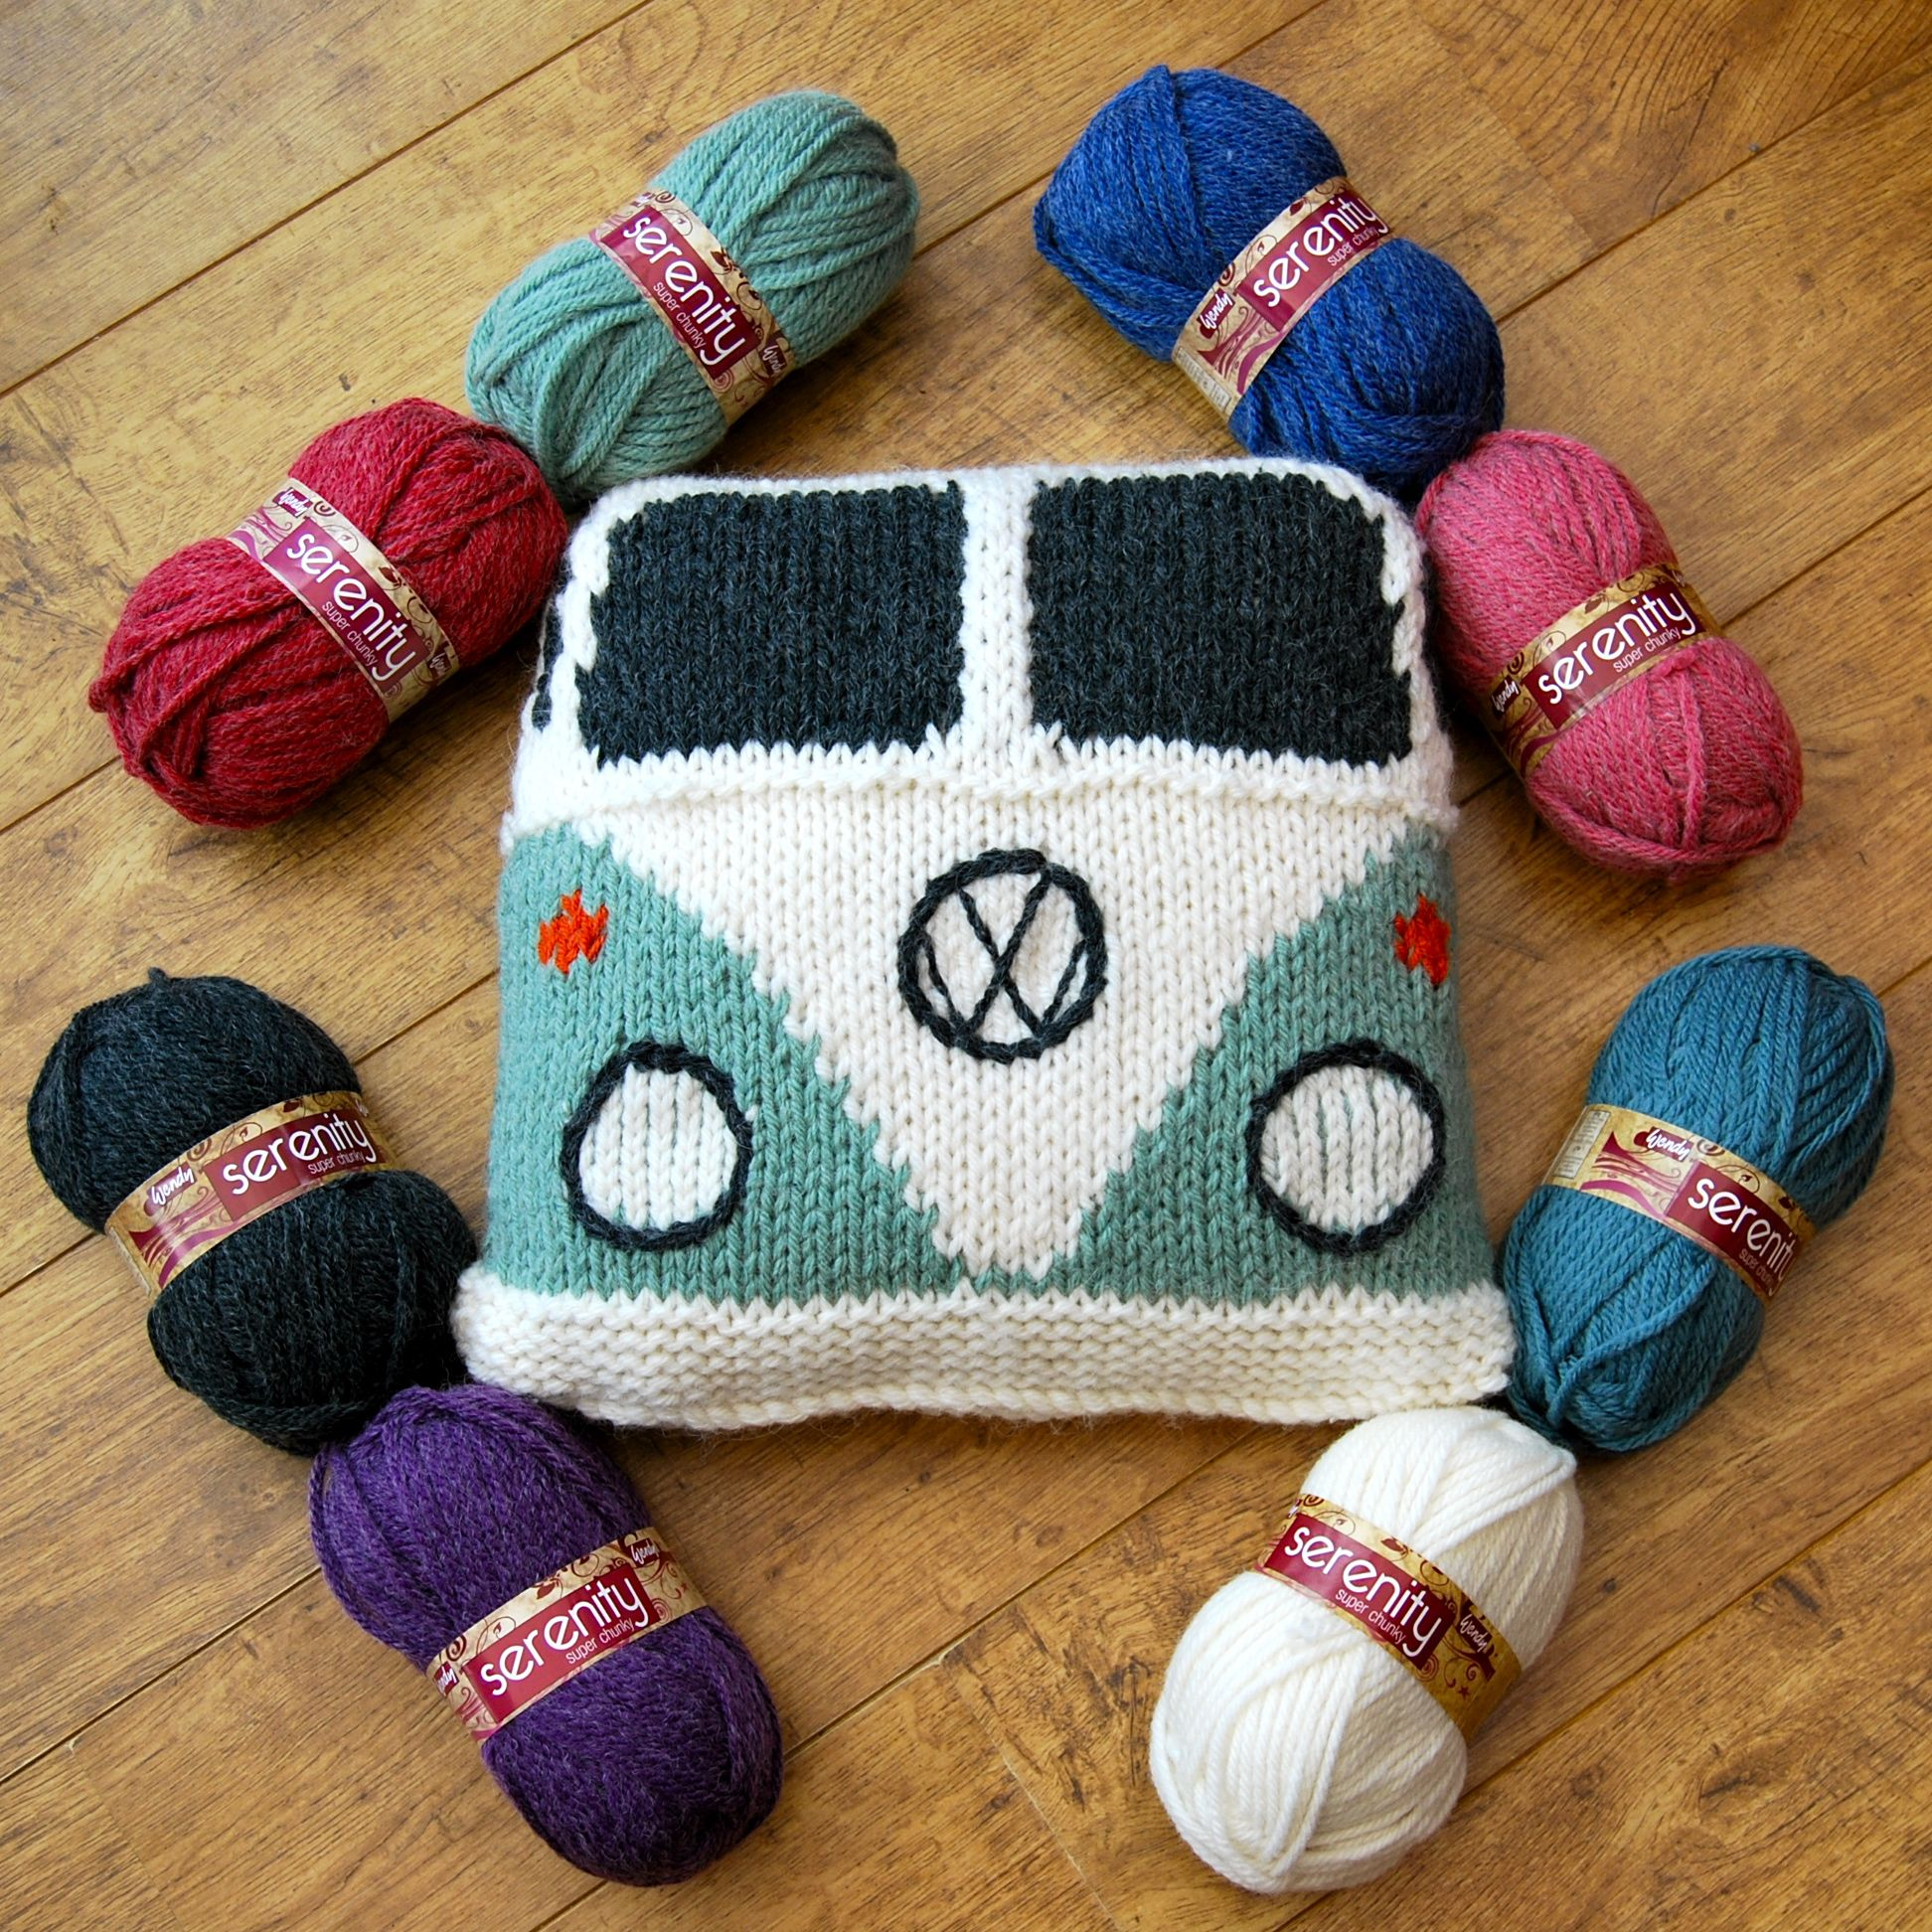 Knitted cushion cover patterns splitty campervan cushion pattern knitted cushion cover patterns splitty campervan cushion pattern slightly sheepish bankloansurffo Choice Image